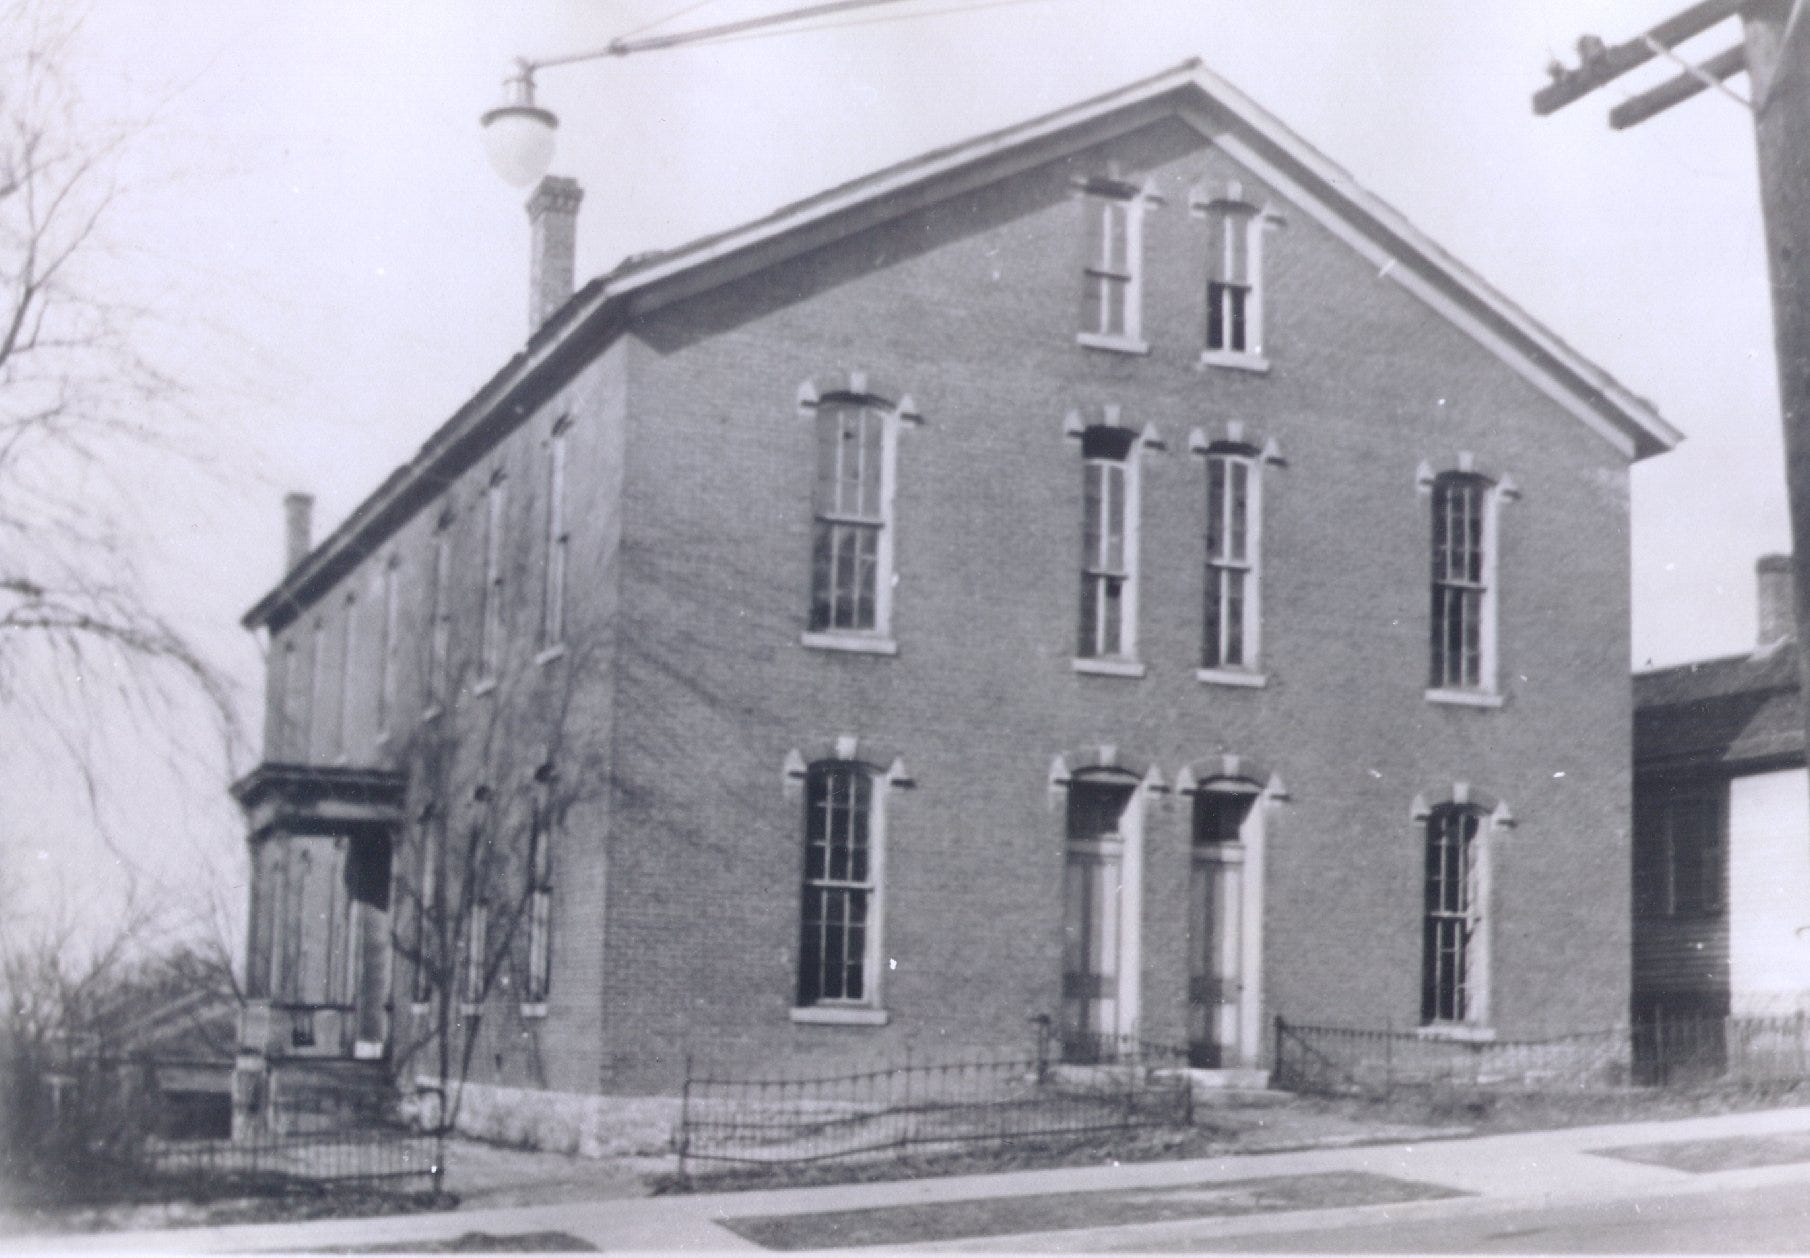 In 1852, the Catholic Church opened a parochial school in Lafayette at Fifth and Cincinnati streets. This is St. Mary's School for Boys, the north of which is on Brown Street between Fifth and Sixth streets.